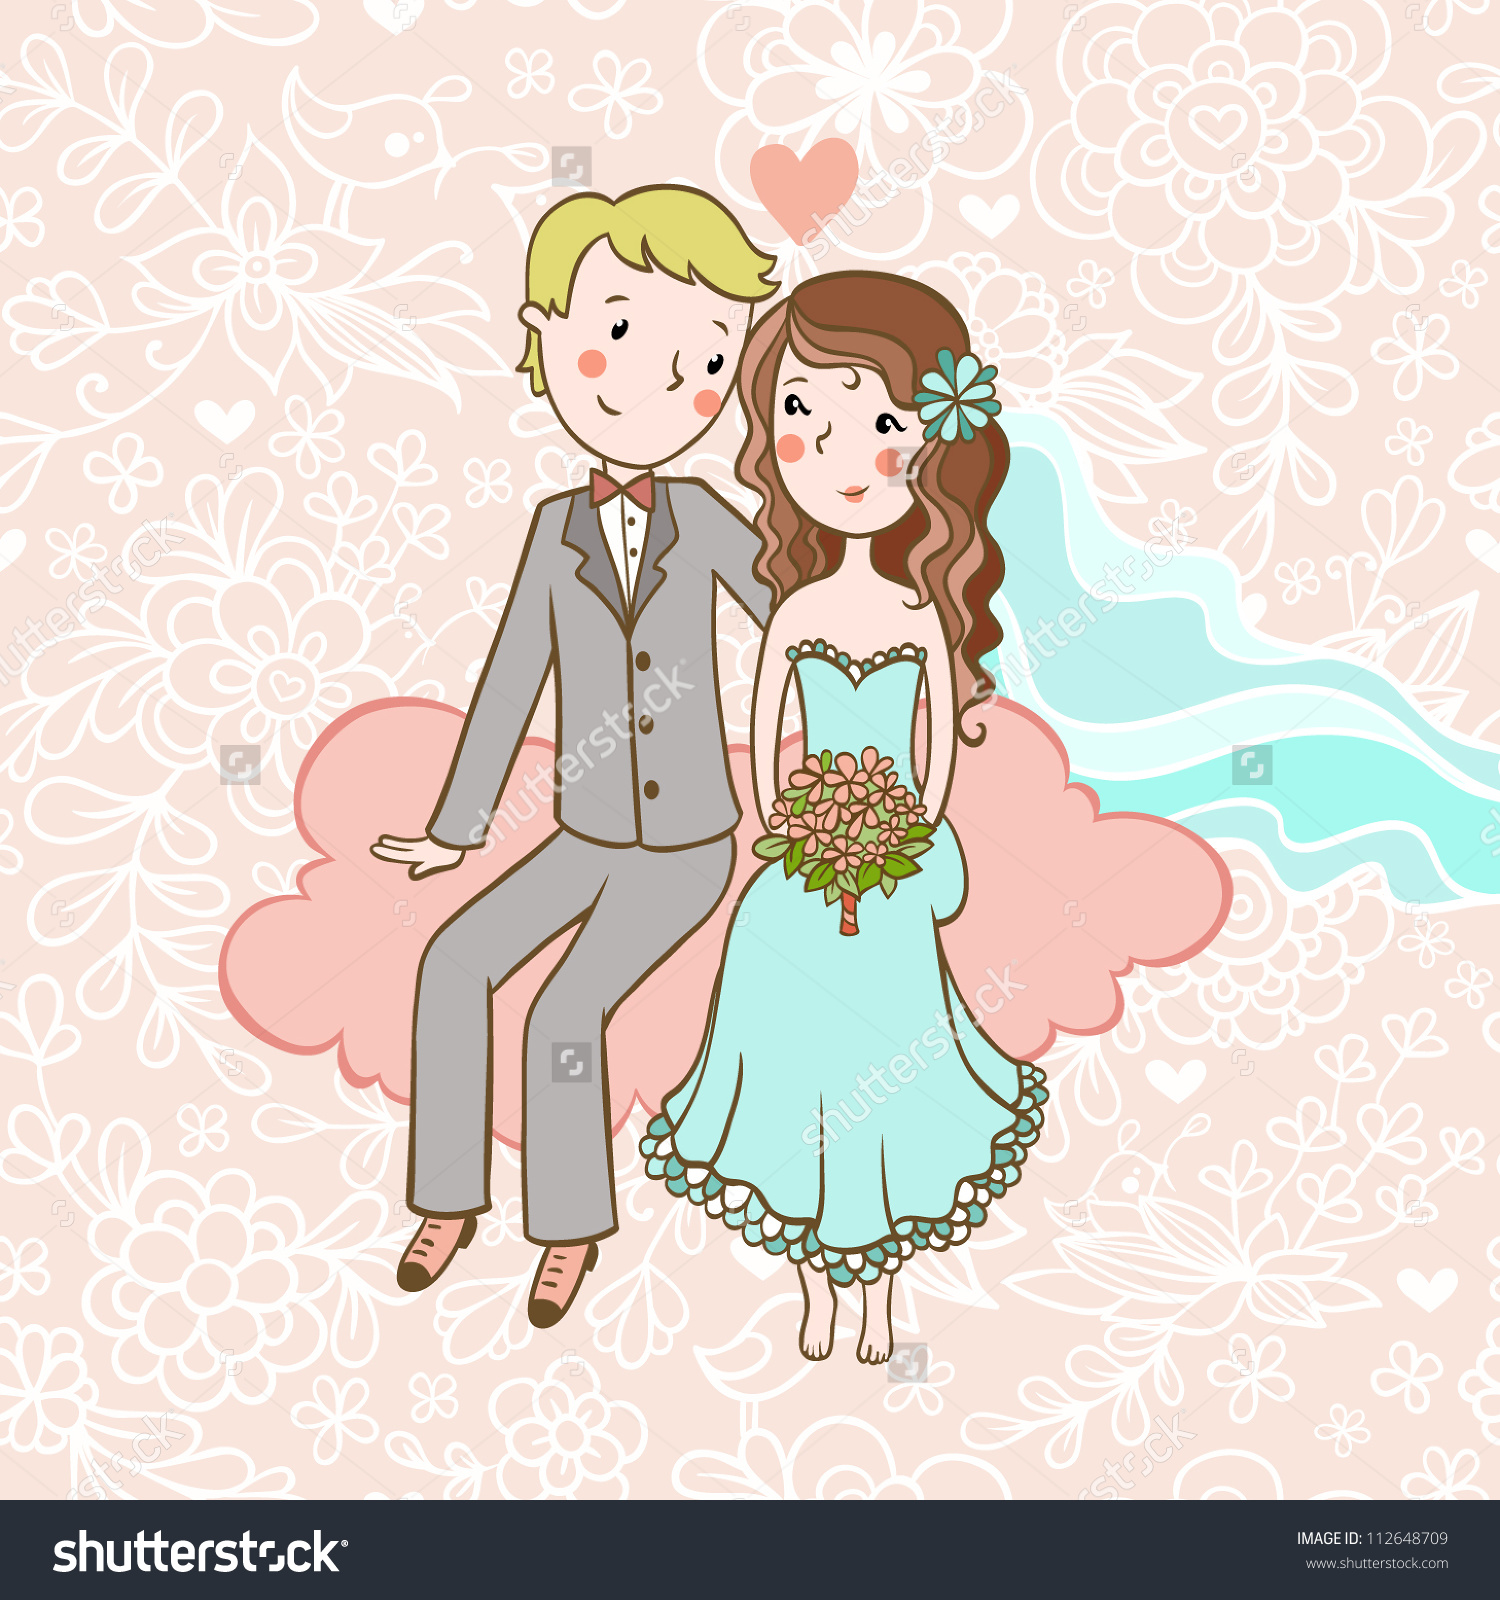 Vintage Wedding Invitation With A Boy And Girl Sitting On Clouds.